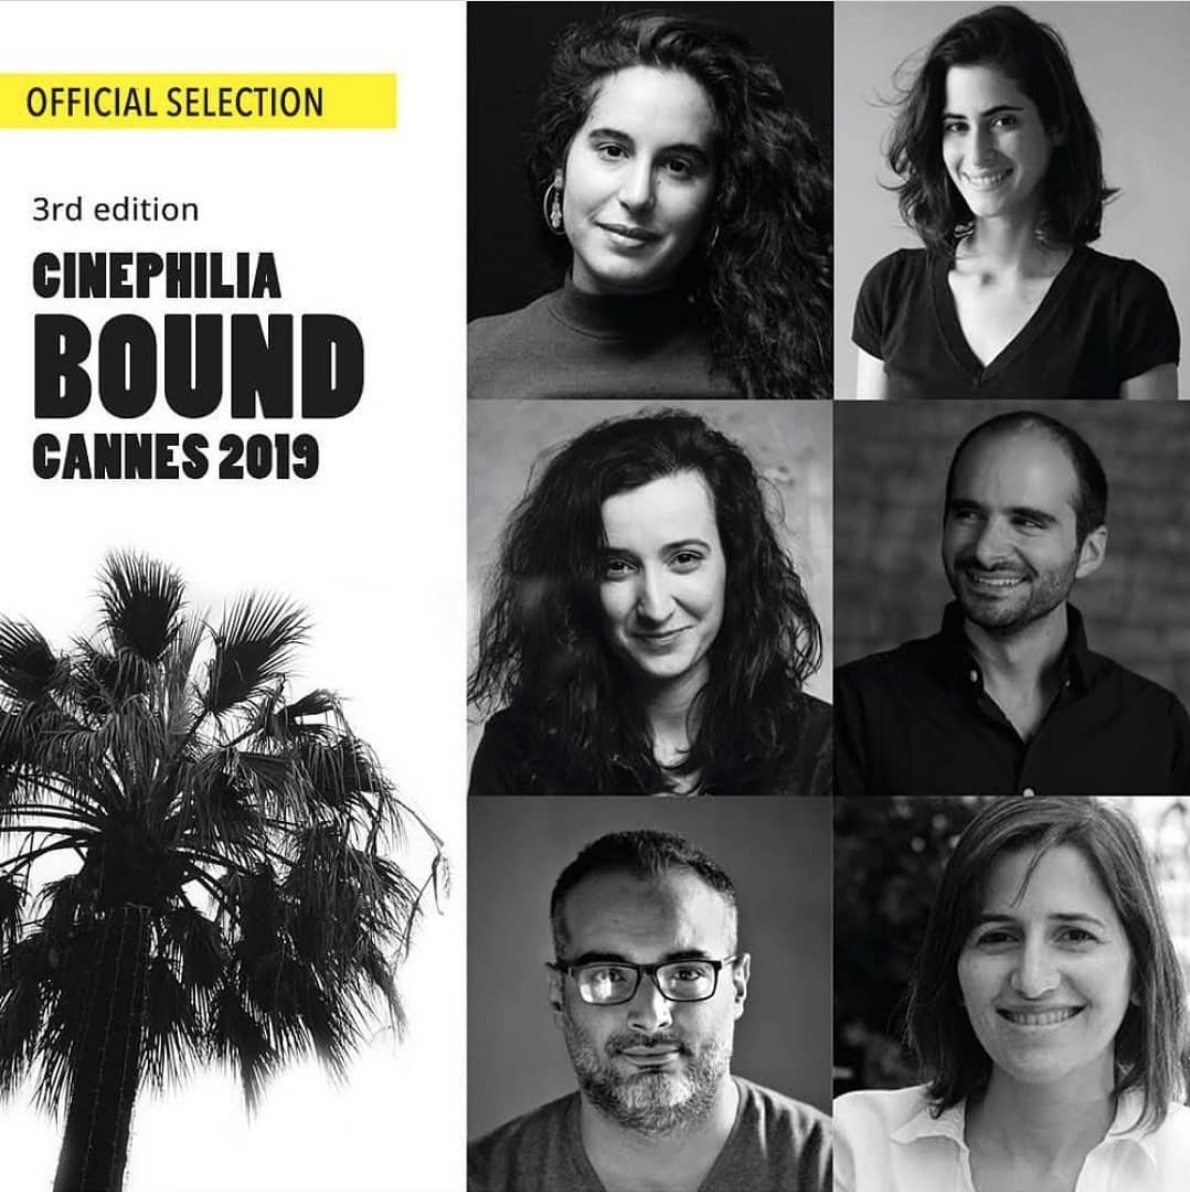 Participant at the 3rd edition  Cinephilia Bound Cannes  at the Cannes Film Festival 2019